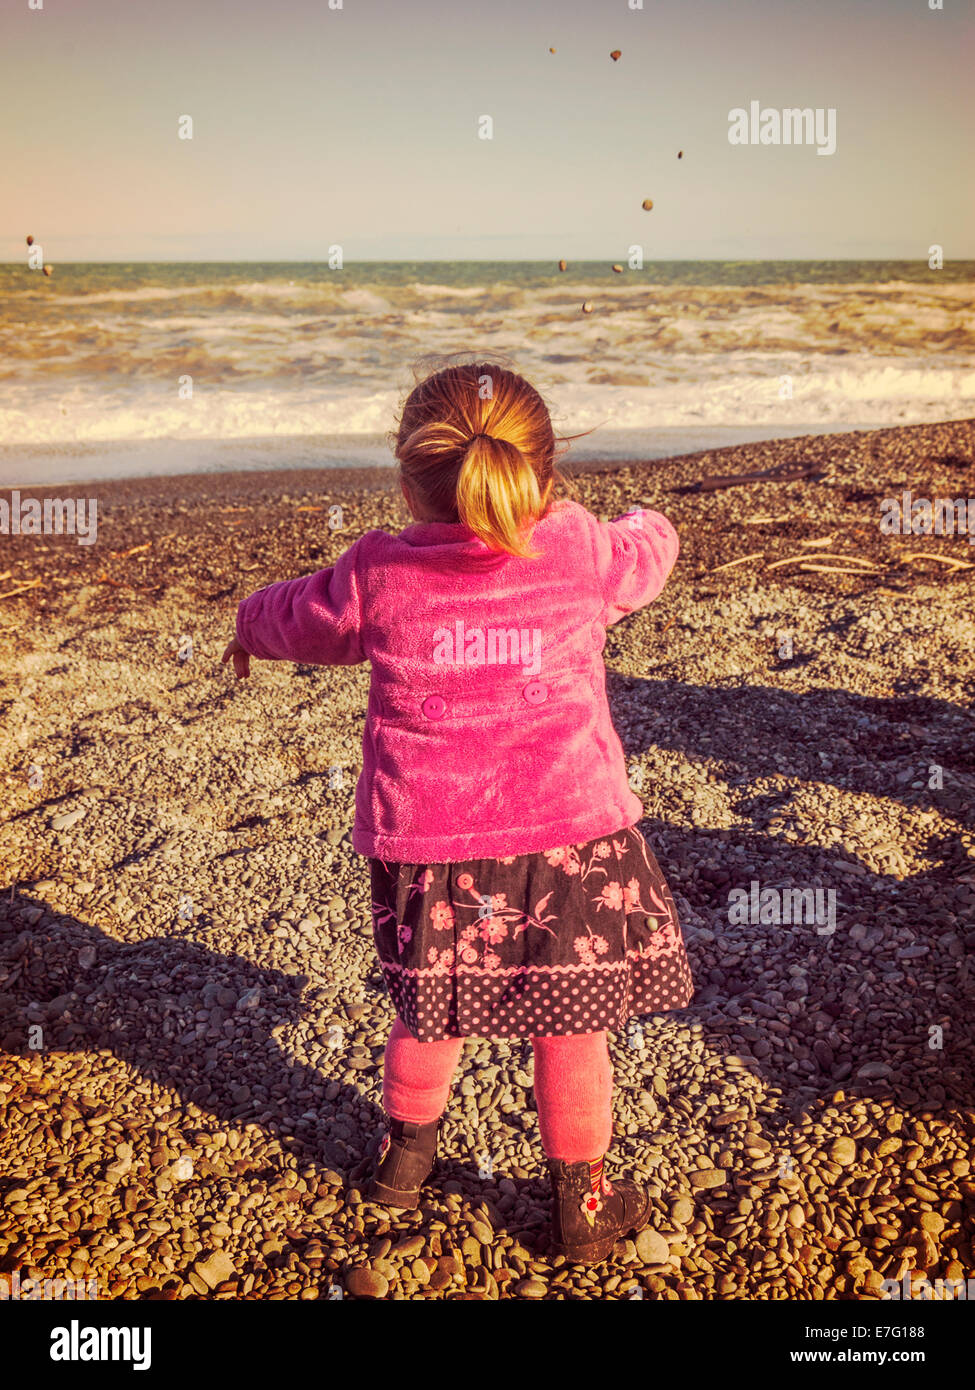 Little girl, 2 years old, throwing pebbles into sea, with instagram filter. - Stock Image